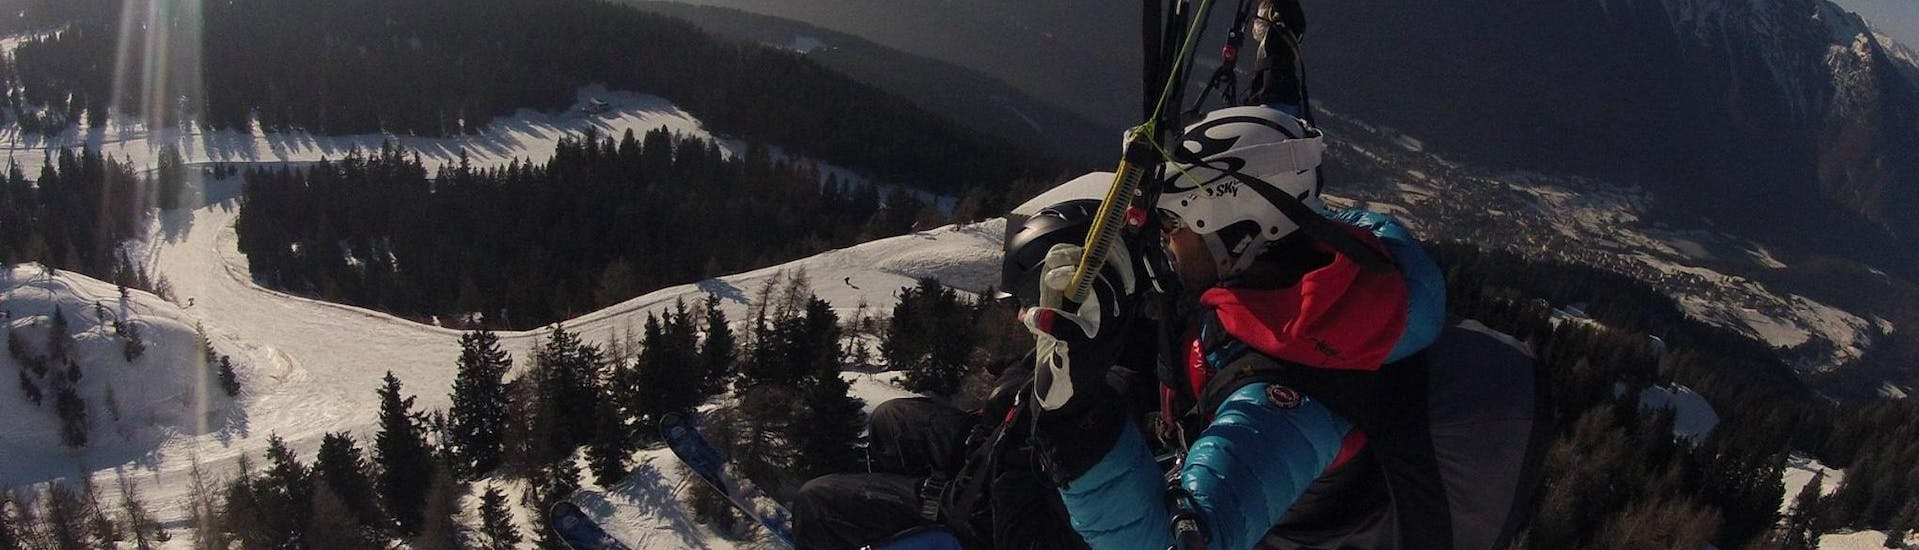 tandem-paragliding-in-andalo-winter-ifly-tandem-hero